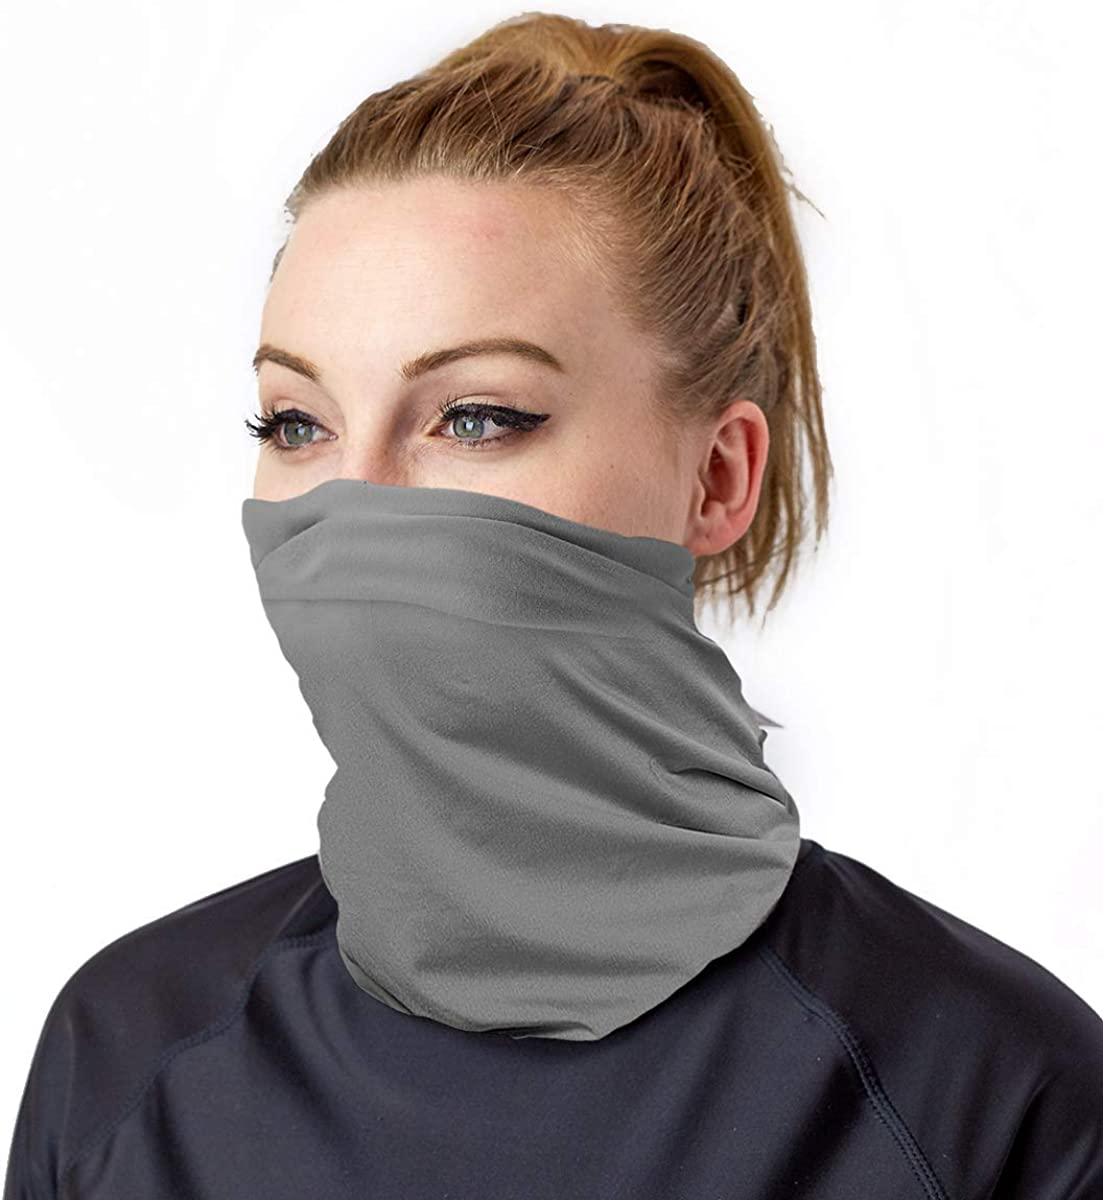 UV SKINZ UPF 50+ UV and Dust Protective, Breathable, Reusable Soft Face Shield